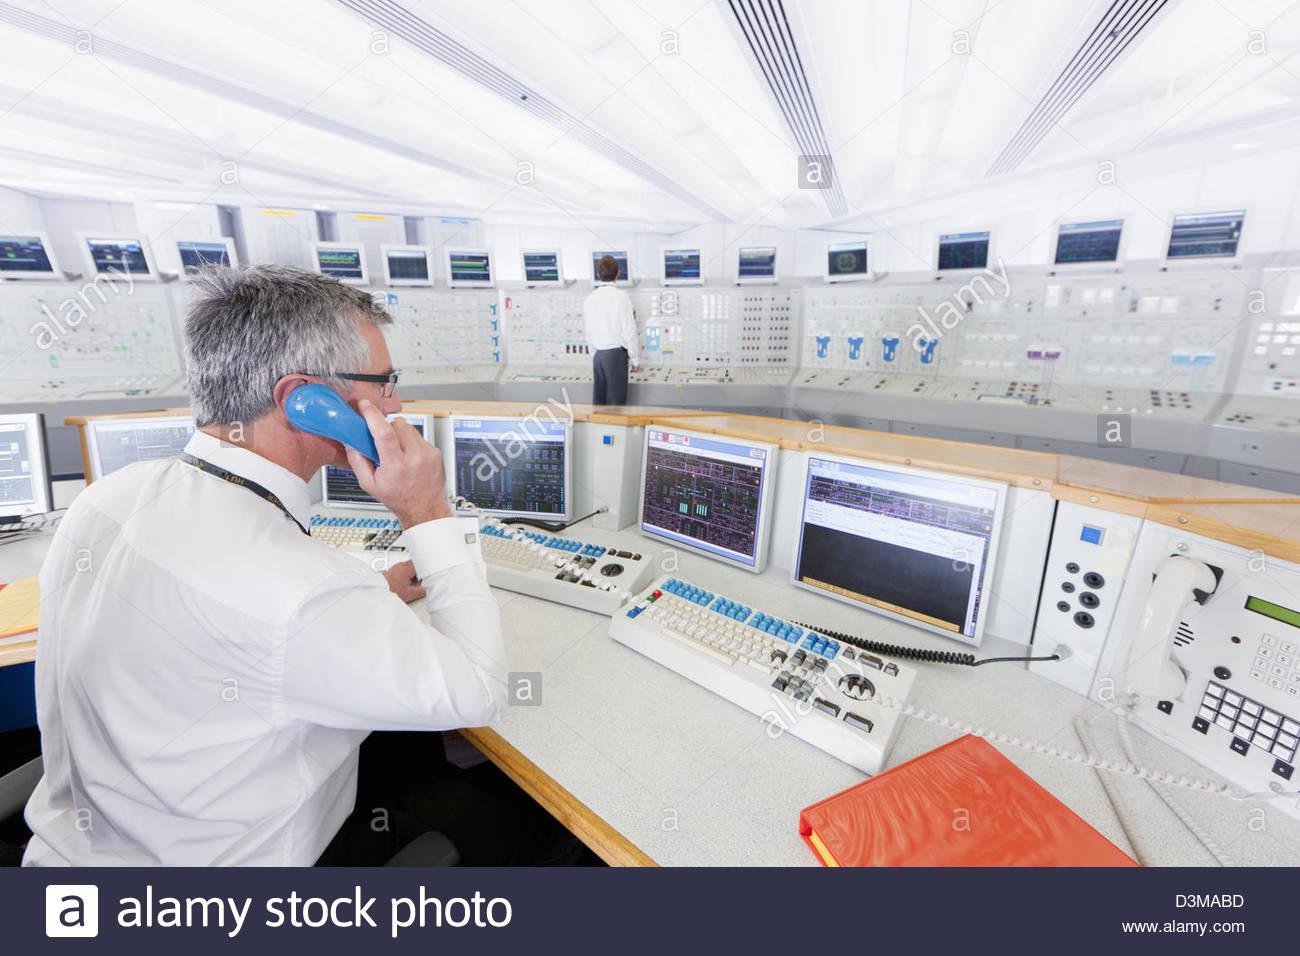 Engineer at computers in control room of nuclear power station - Stock Image